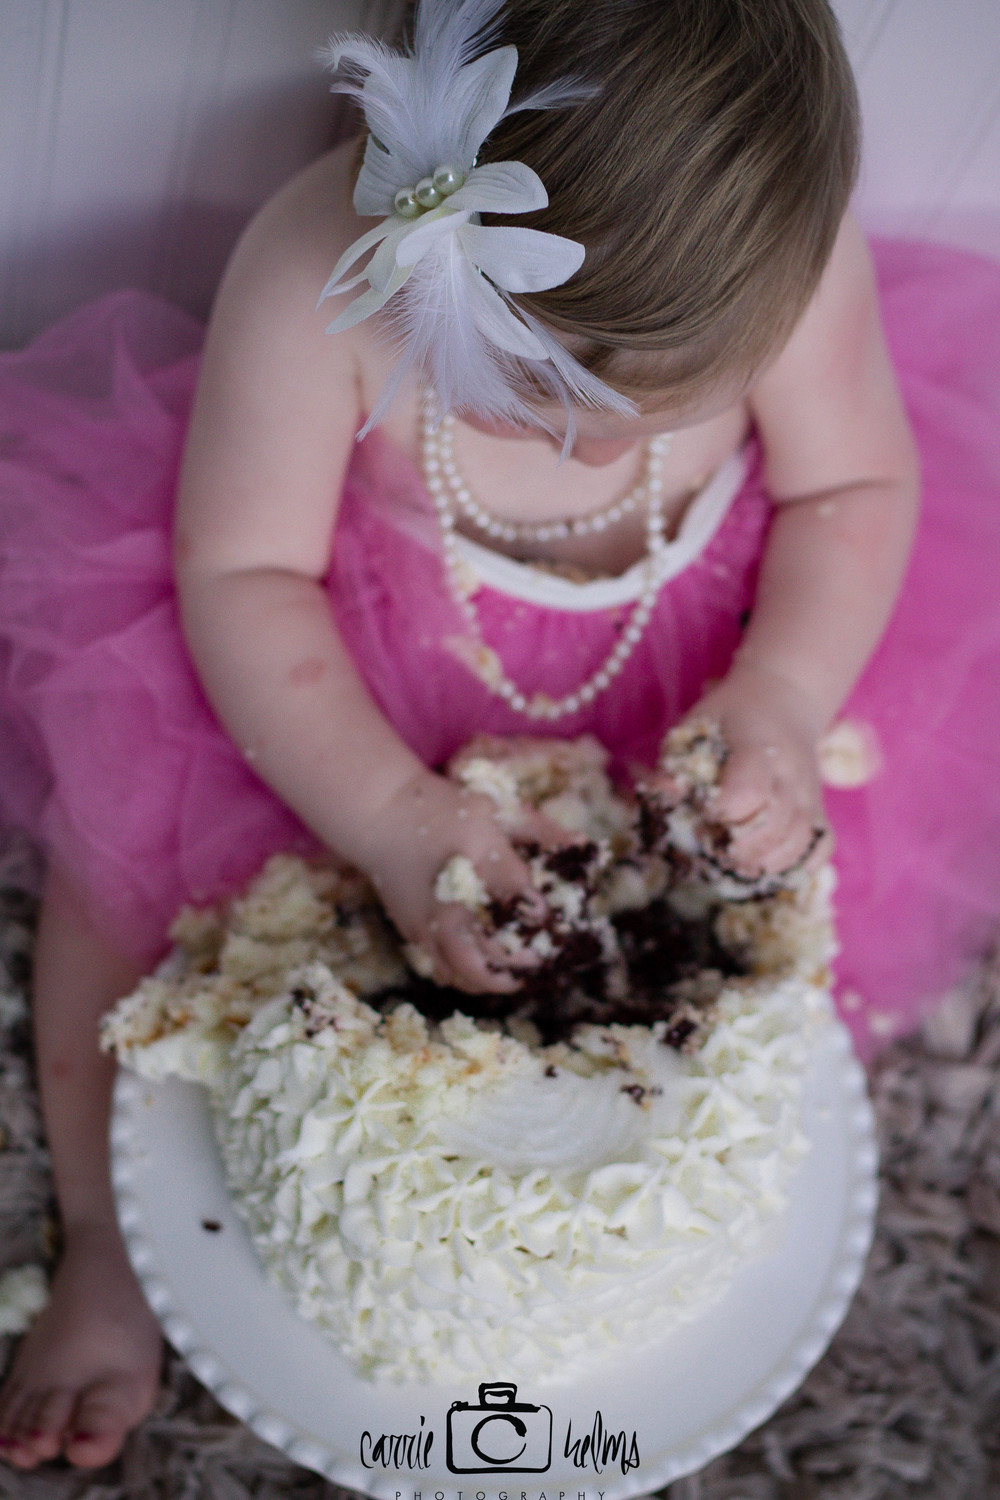 Greensboro North Carolina Cake Smash First Birthday Childrens Photographer